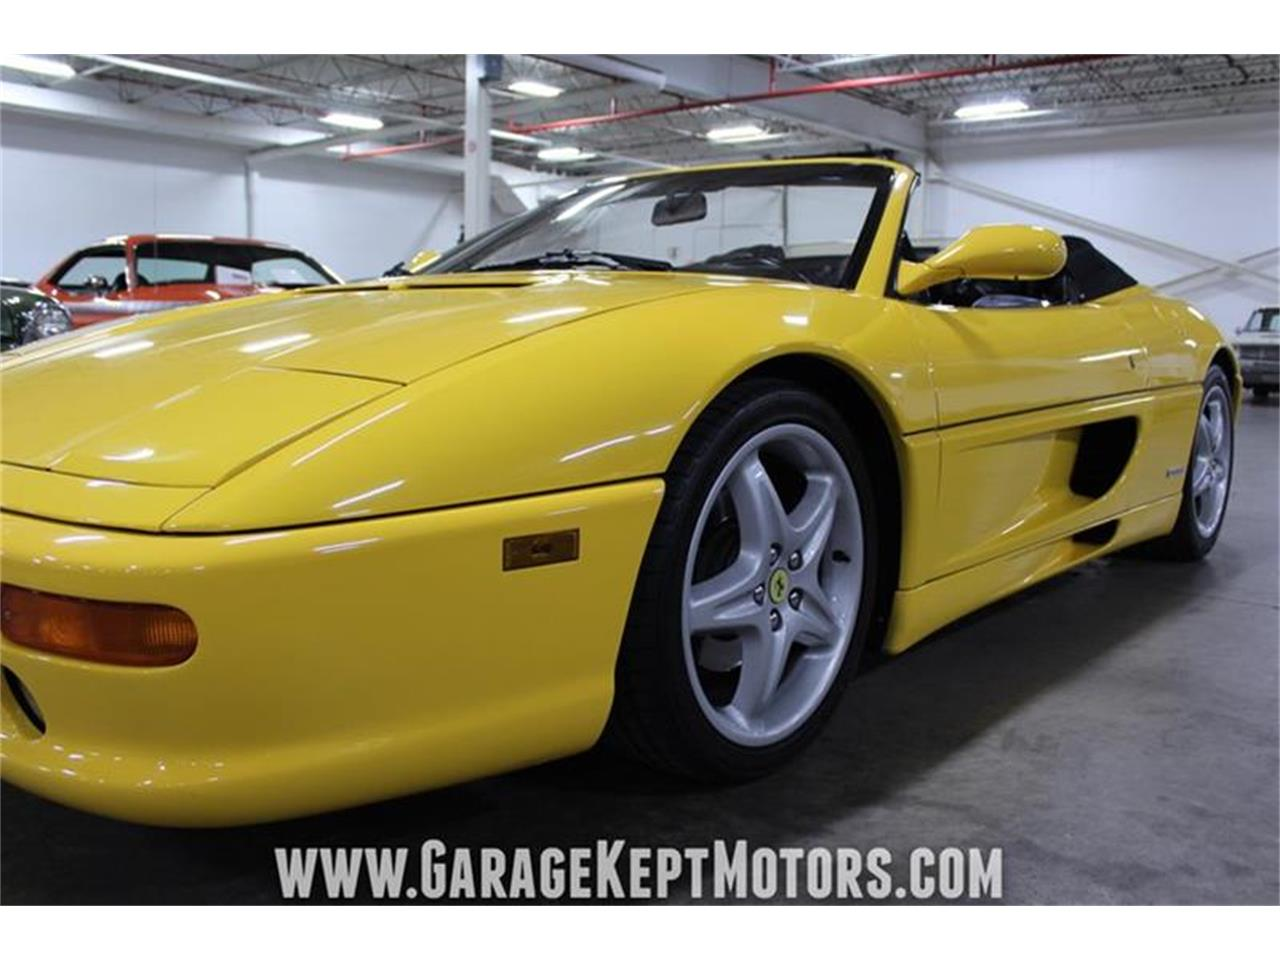 Large Picture of '97 F355 - $59,900.00 - PWXC